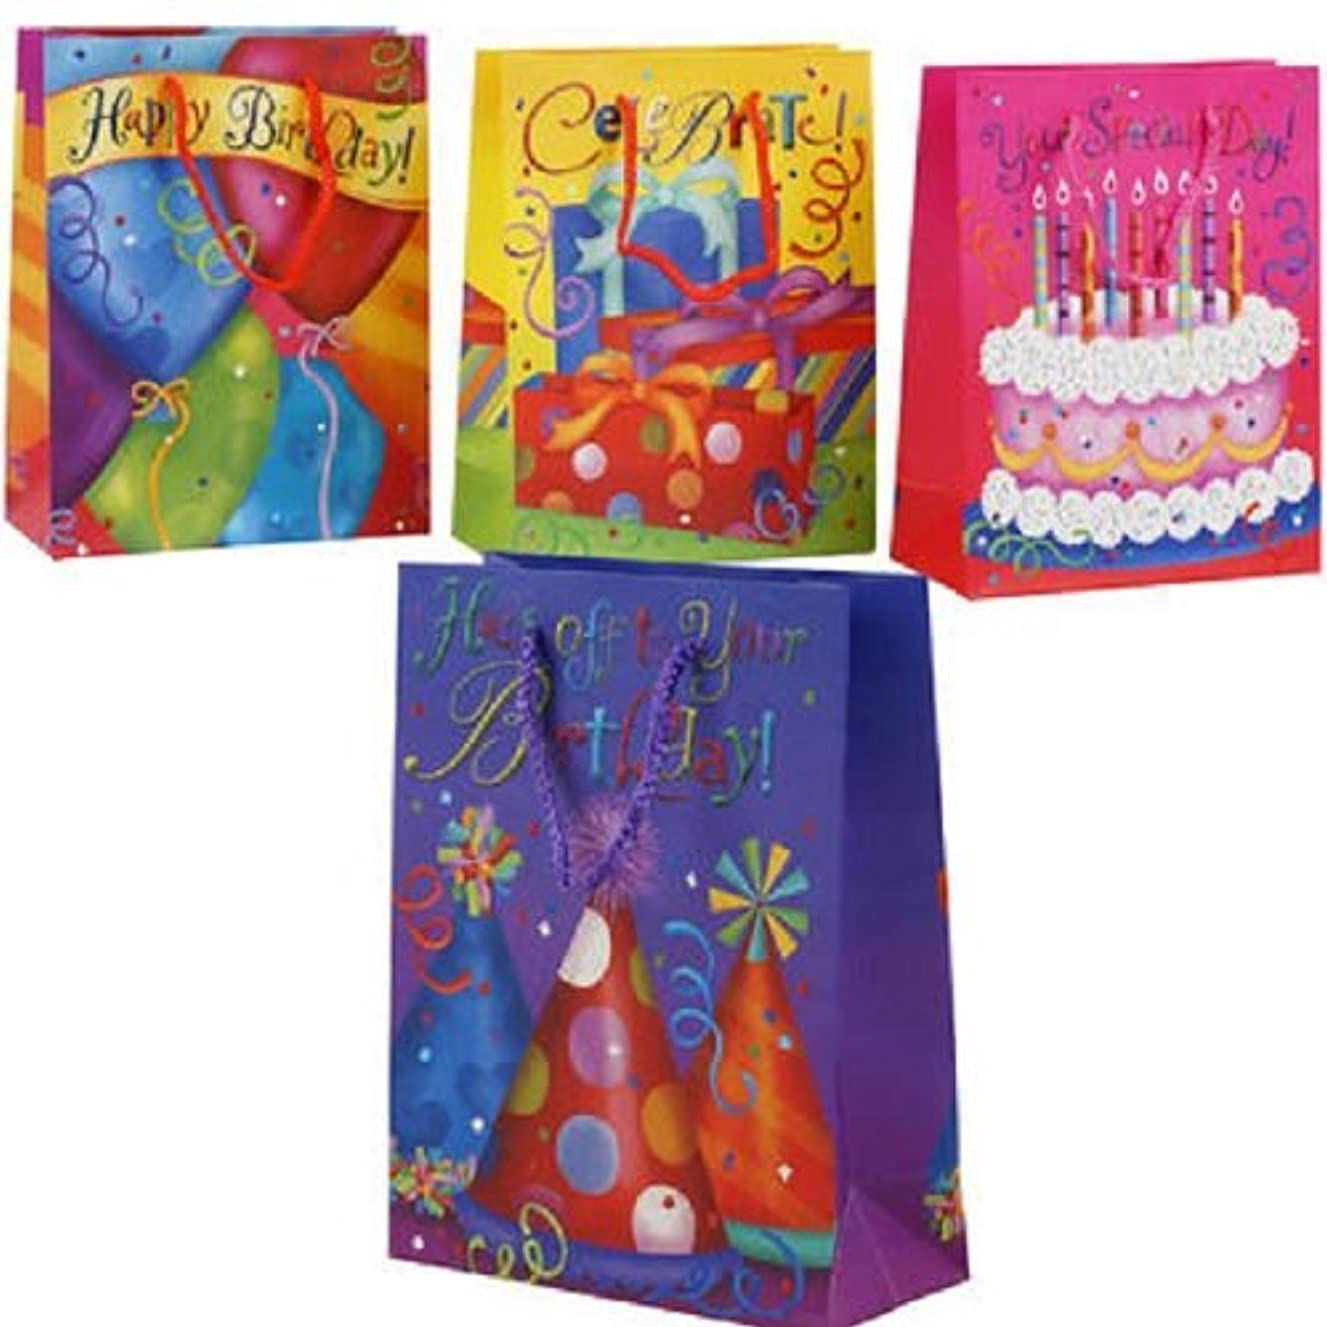 Birthday Gift Bags - Set of 4 - Colorful Gift Bags with Glitter - 9